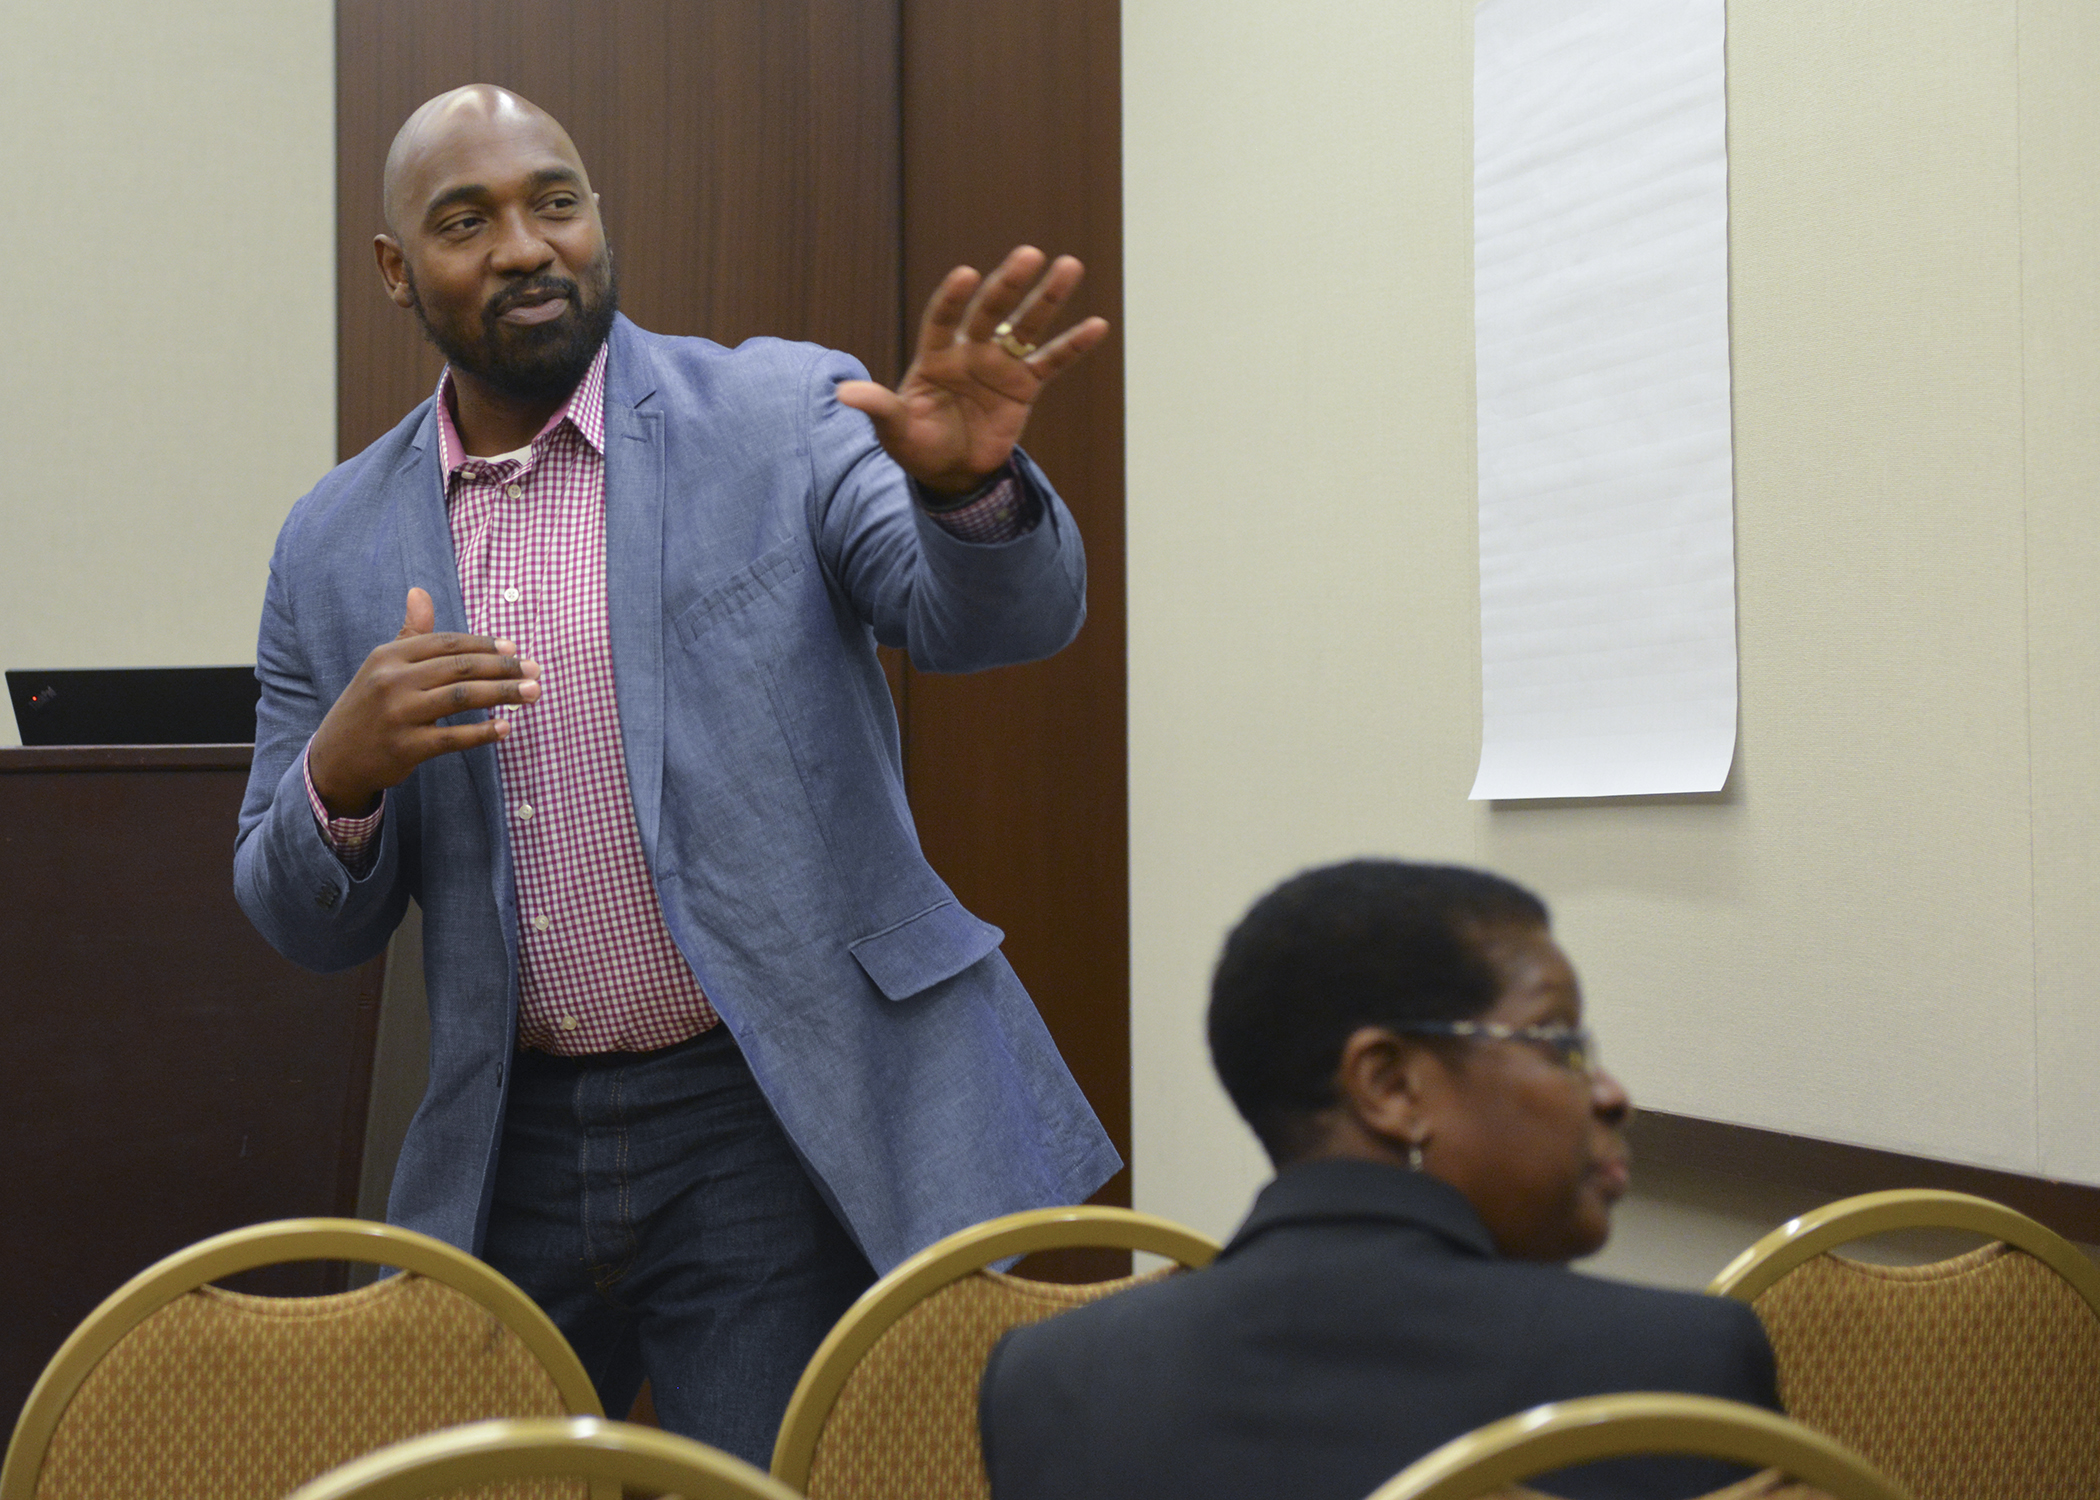 Justin Wooley, a consultant with the Black AIDS Institute, speaks during a session on raising awareness about PrEP among heterosexual Black males at the Institute's annual PrEP summit in Washington, D.C. (Freddie Allen/NNPA News Wire)